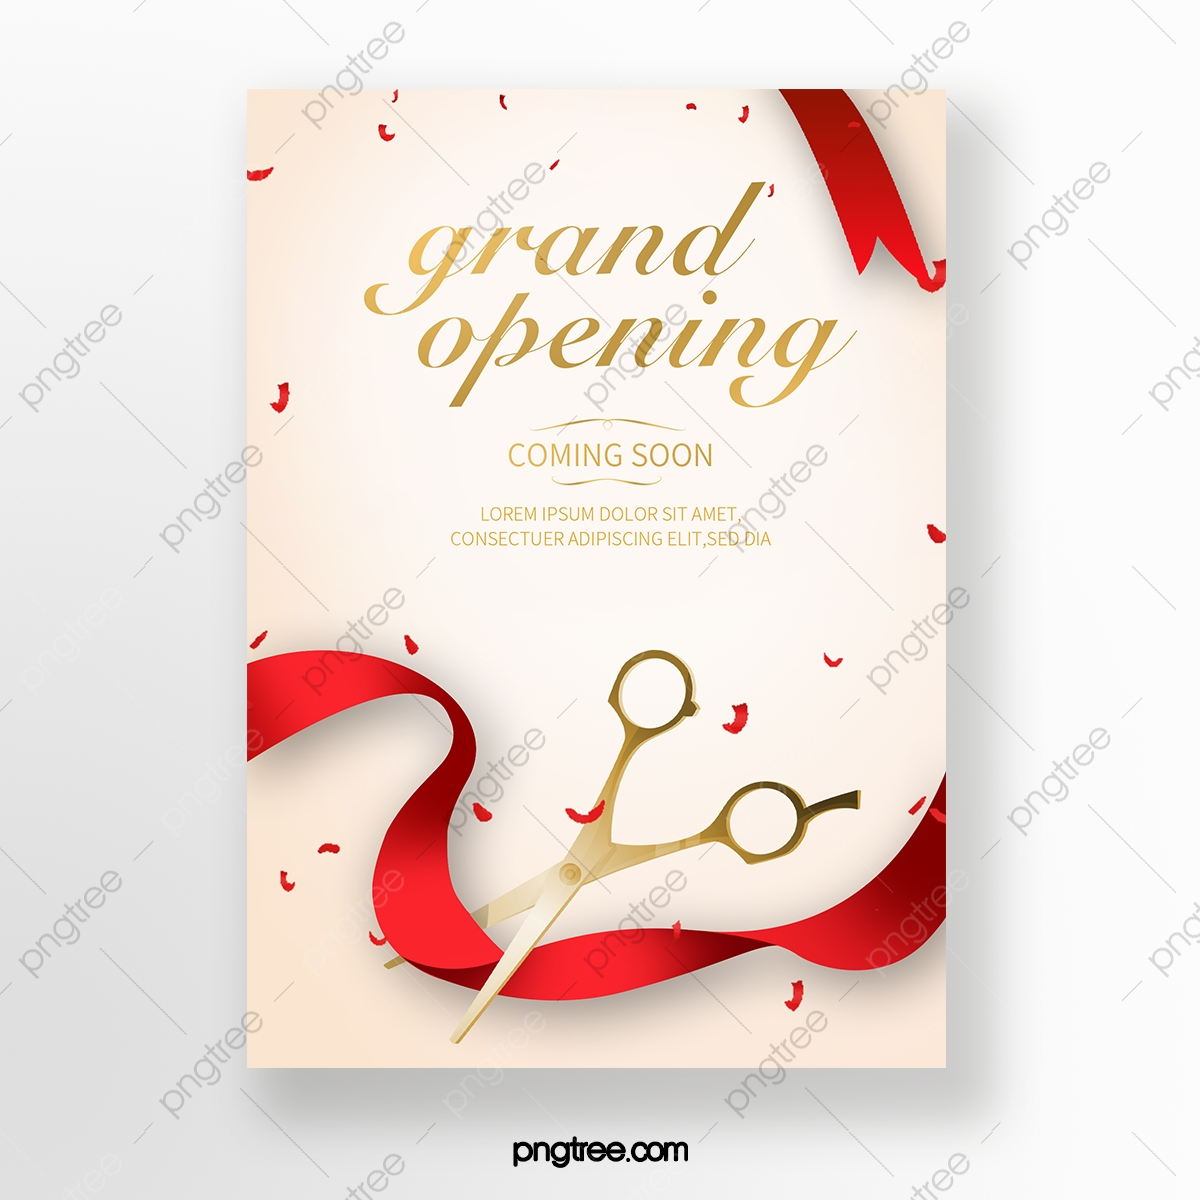 Creative Grand Opening Ceremony Invitation Template Download on